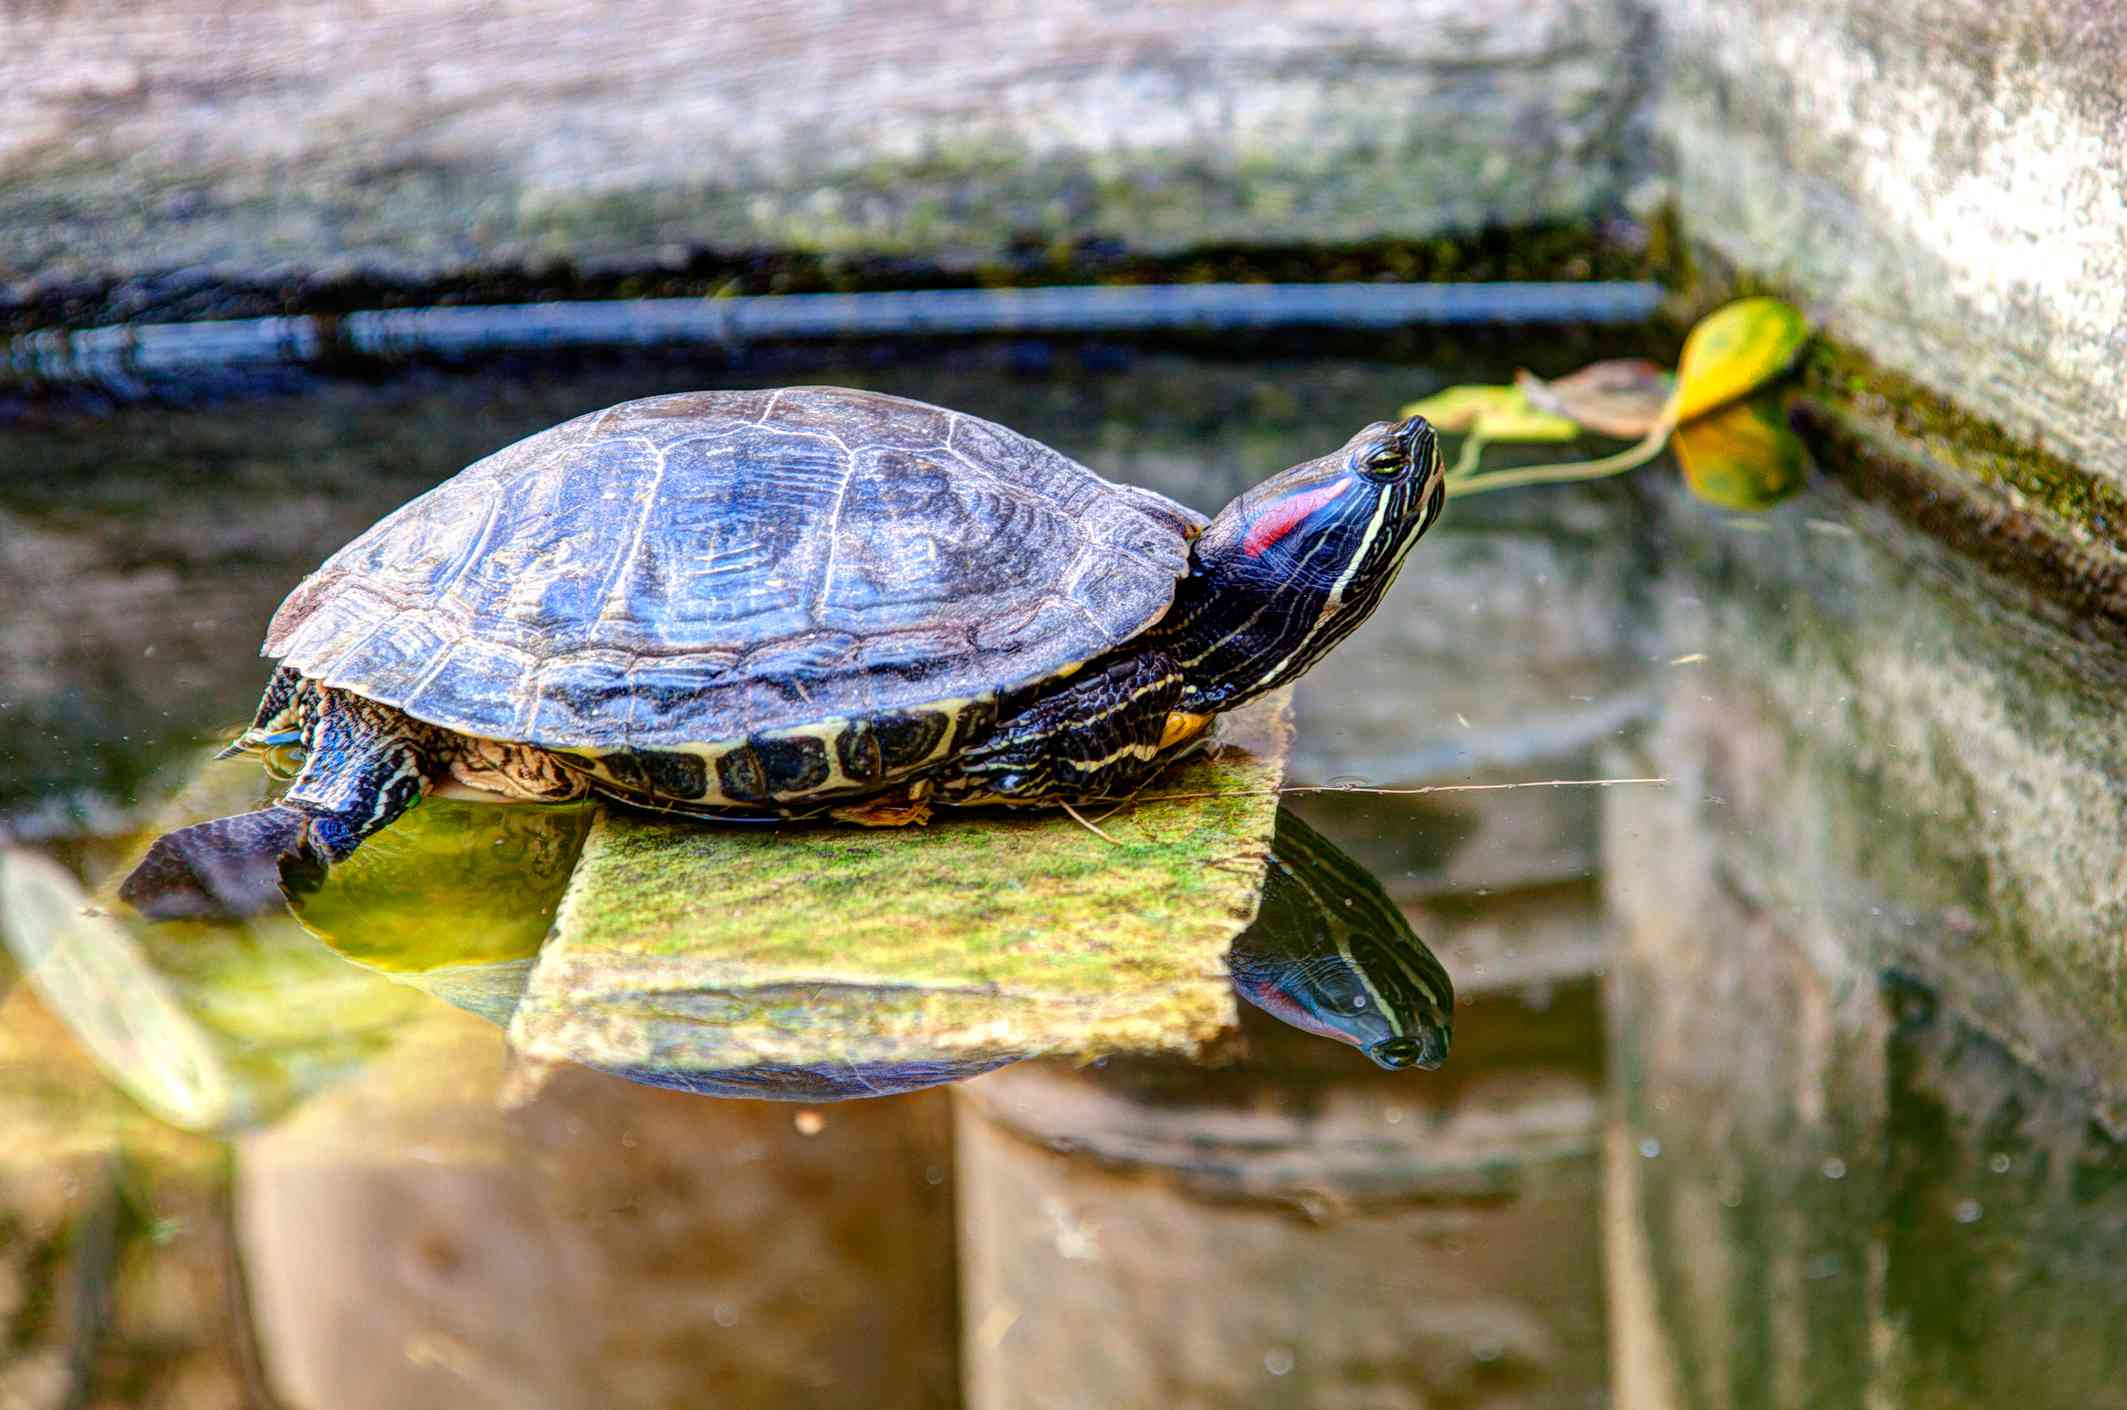 Red Eared Slider Turtle Basking on a stone